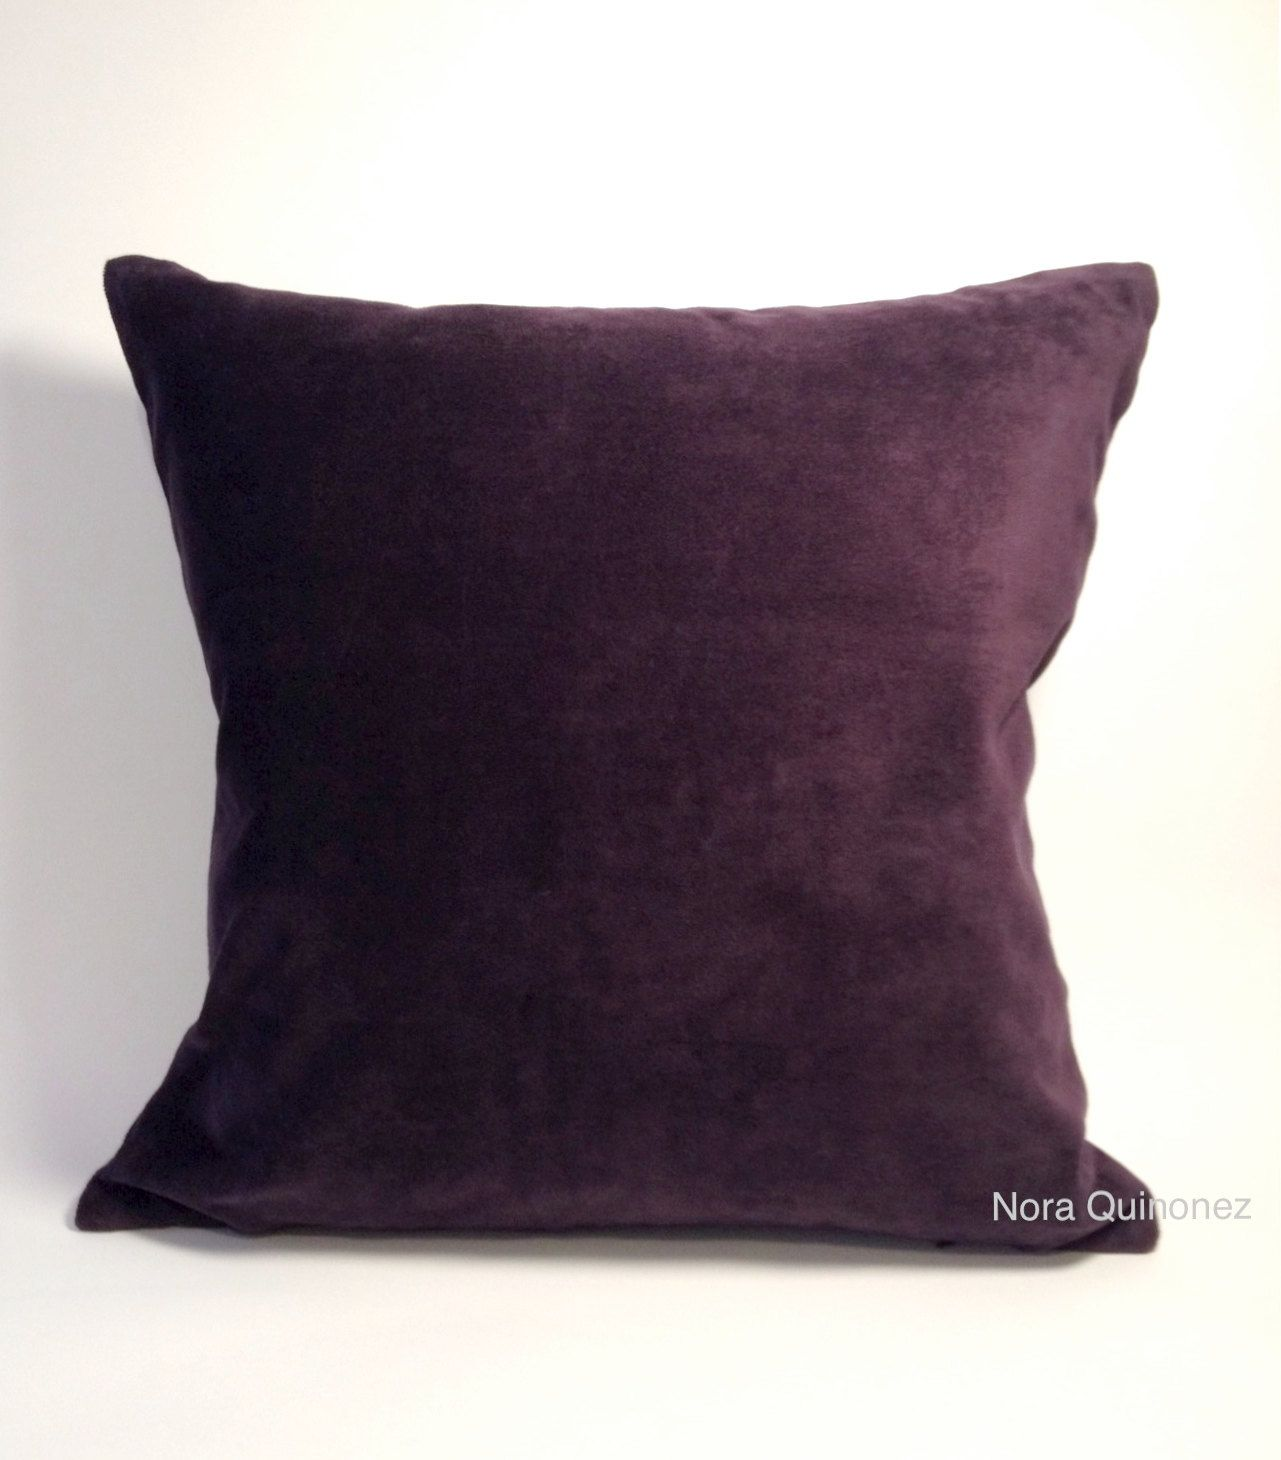 Eggplant Purple Decorative Pillow Cover Medium Weight Cotton Velvet Invisible Zipper Closure